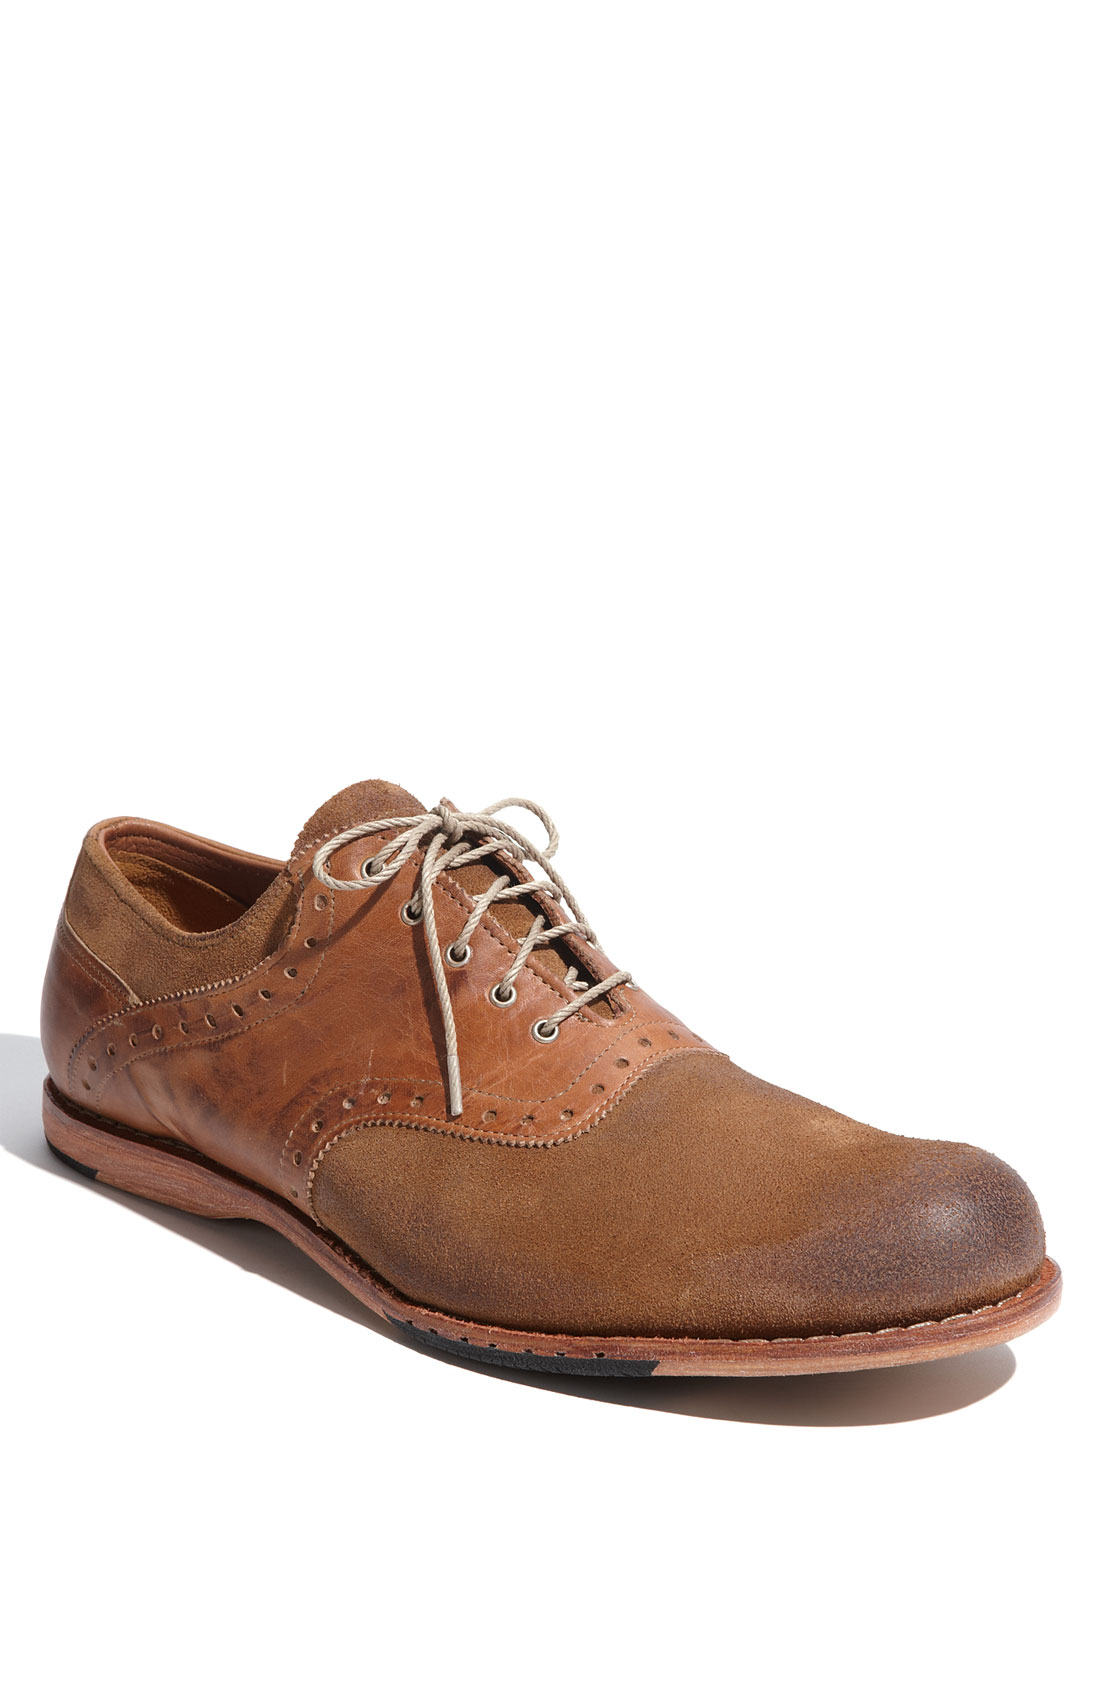 Nordstrom Mens Shoes Review